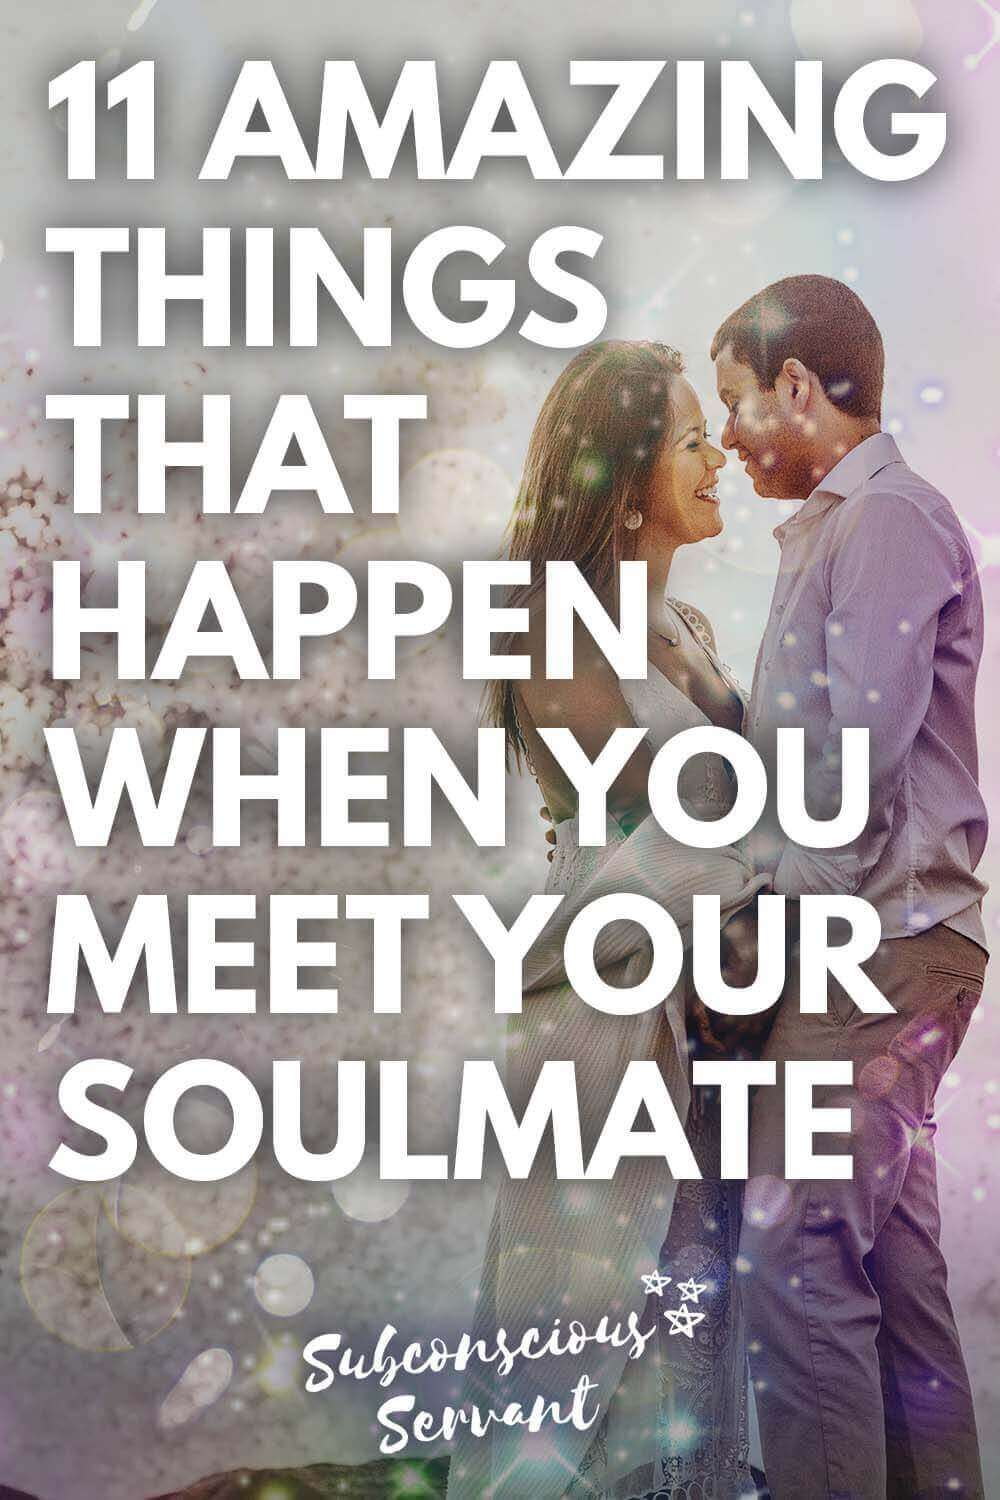 11 Amazing Things That Happen When You Meet Your Soulmate